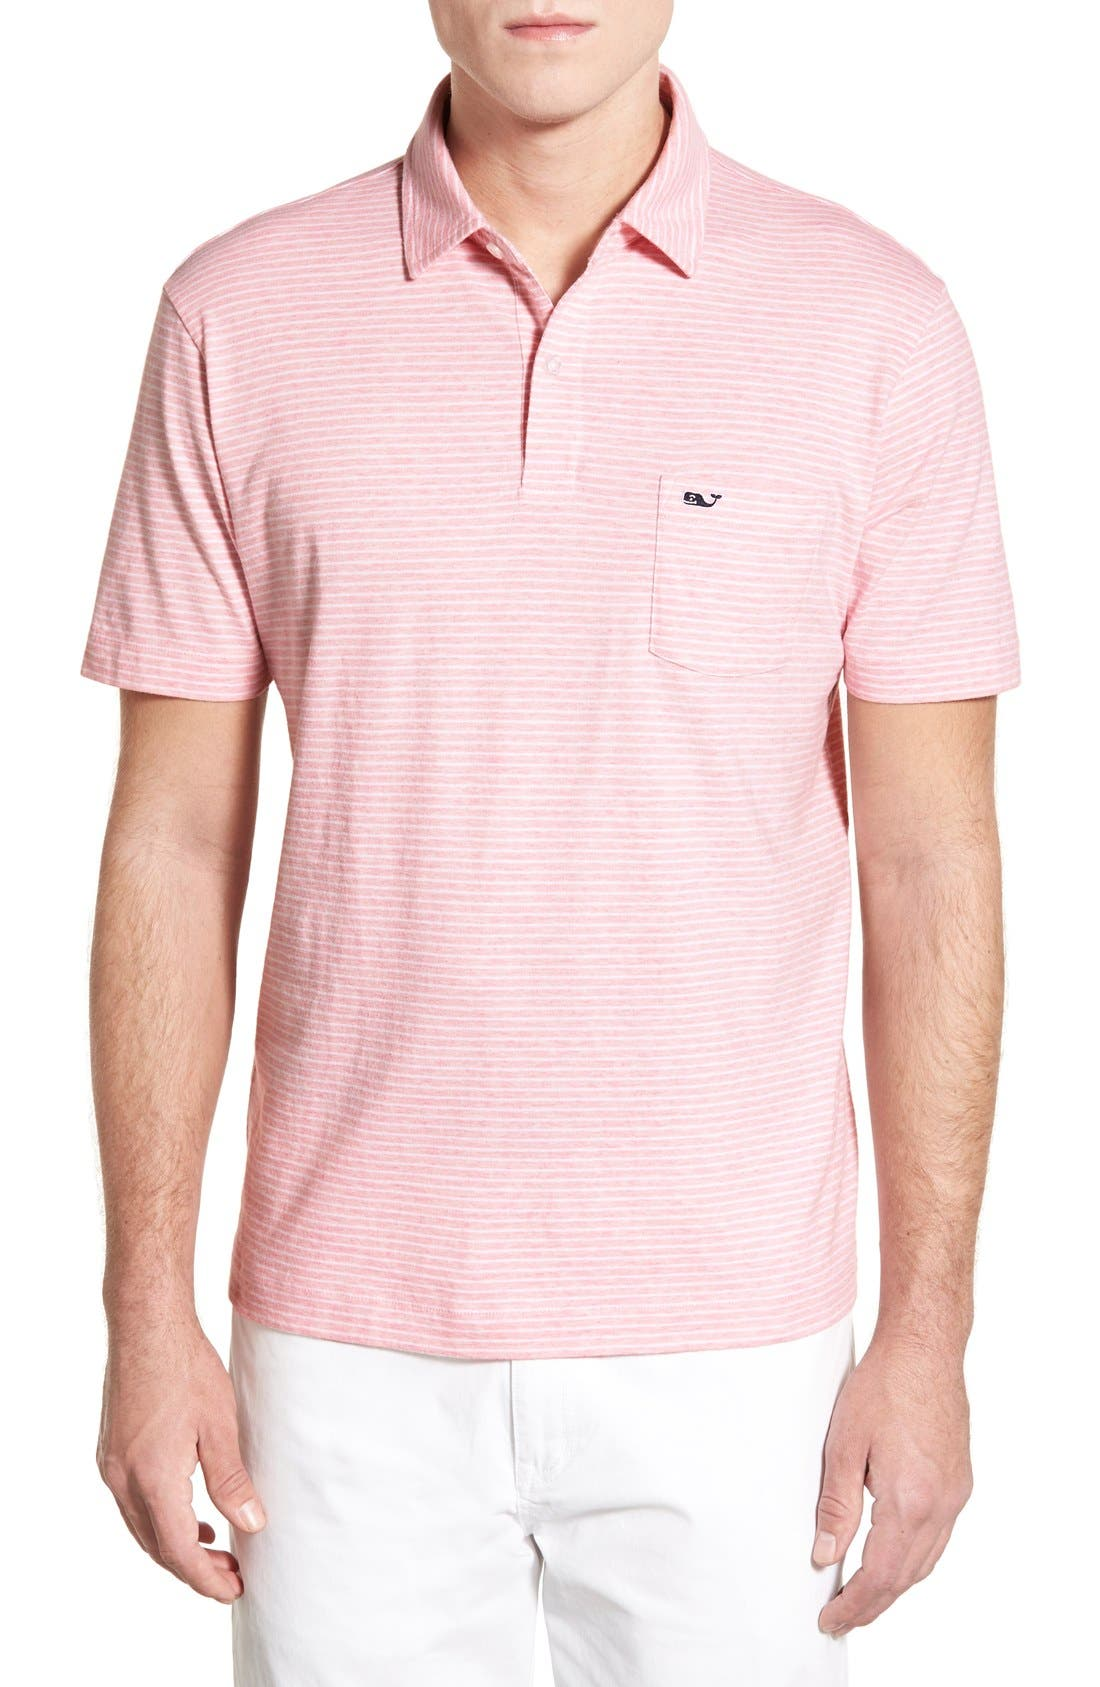 Main Image - Vineyard Vines 'Feeder Stripe' Pima Cotton Polo